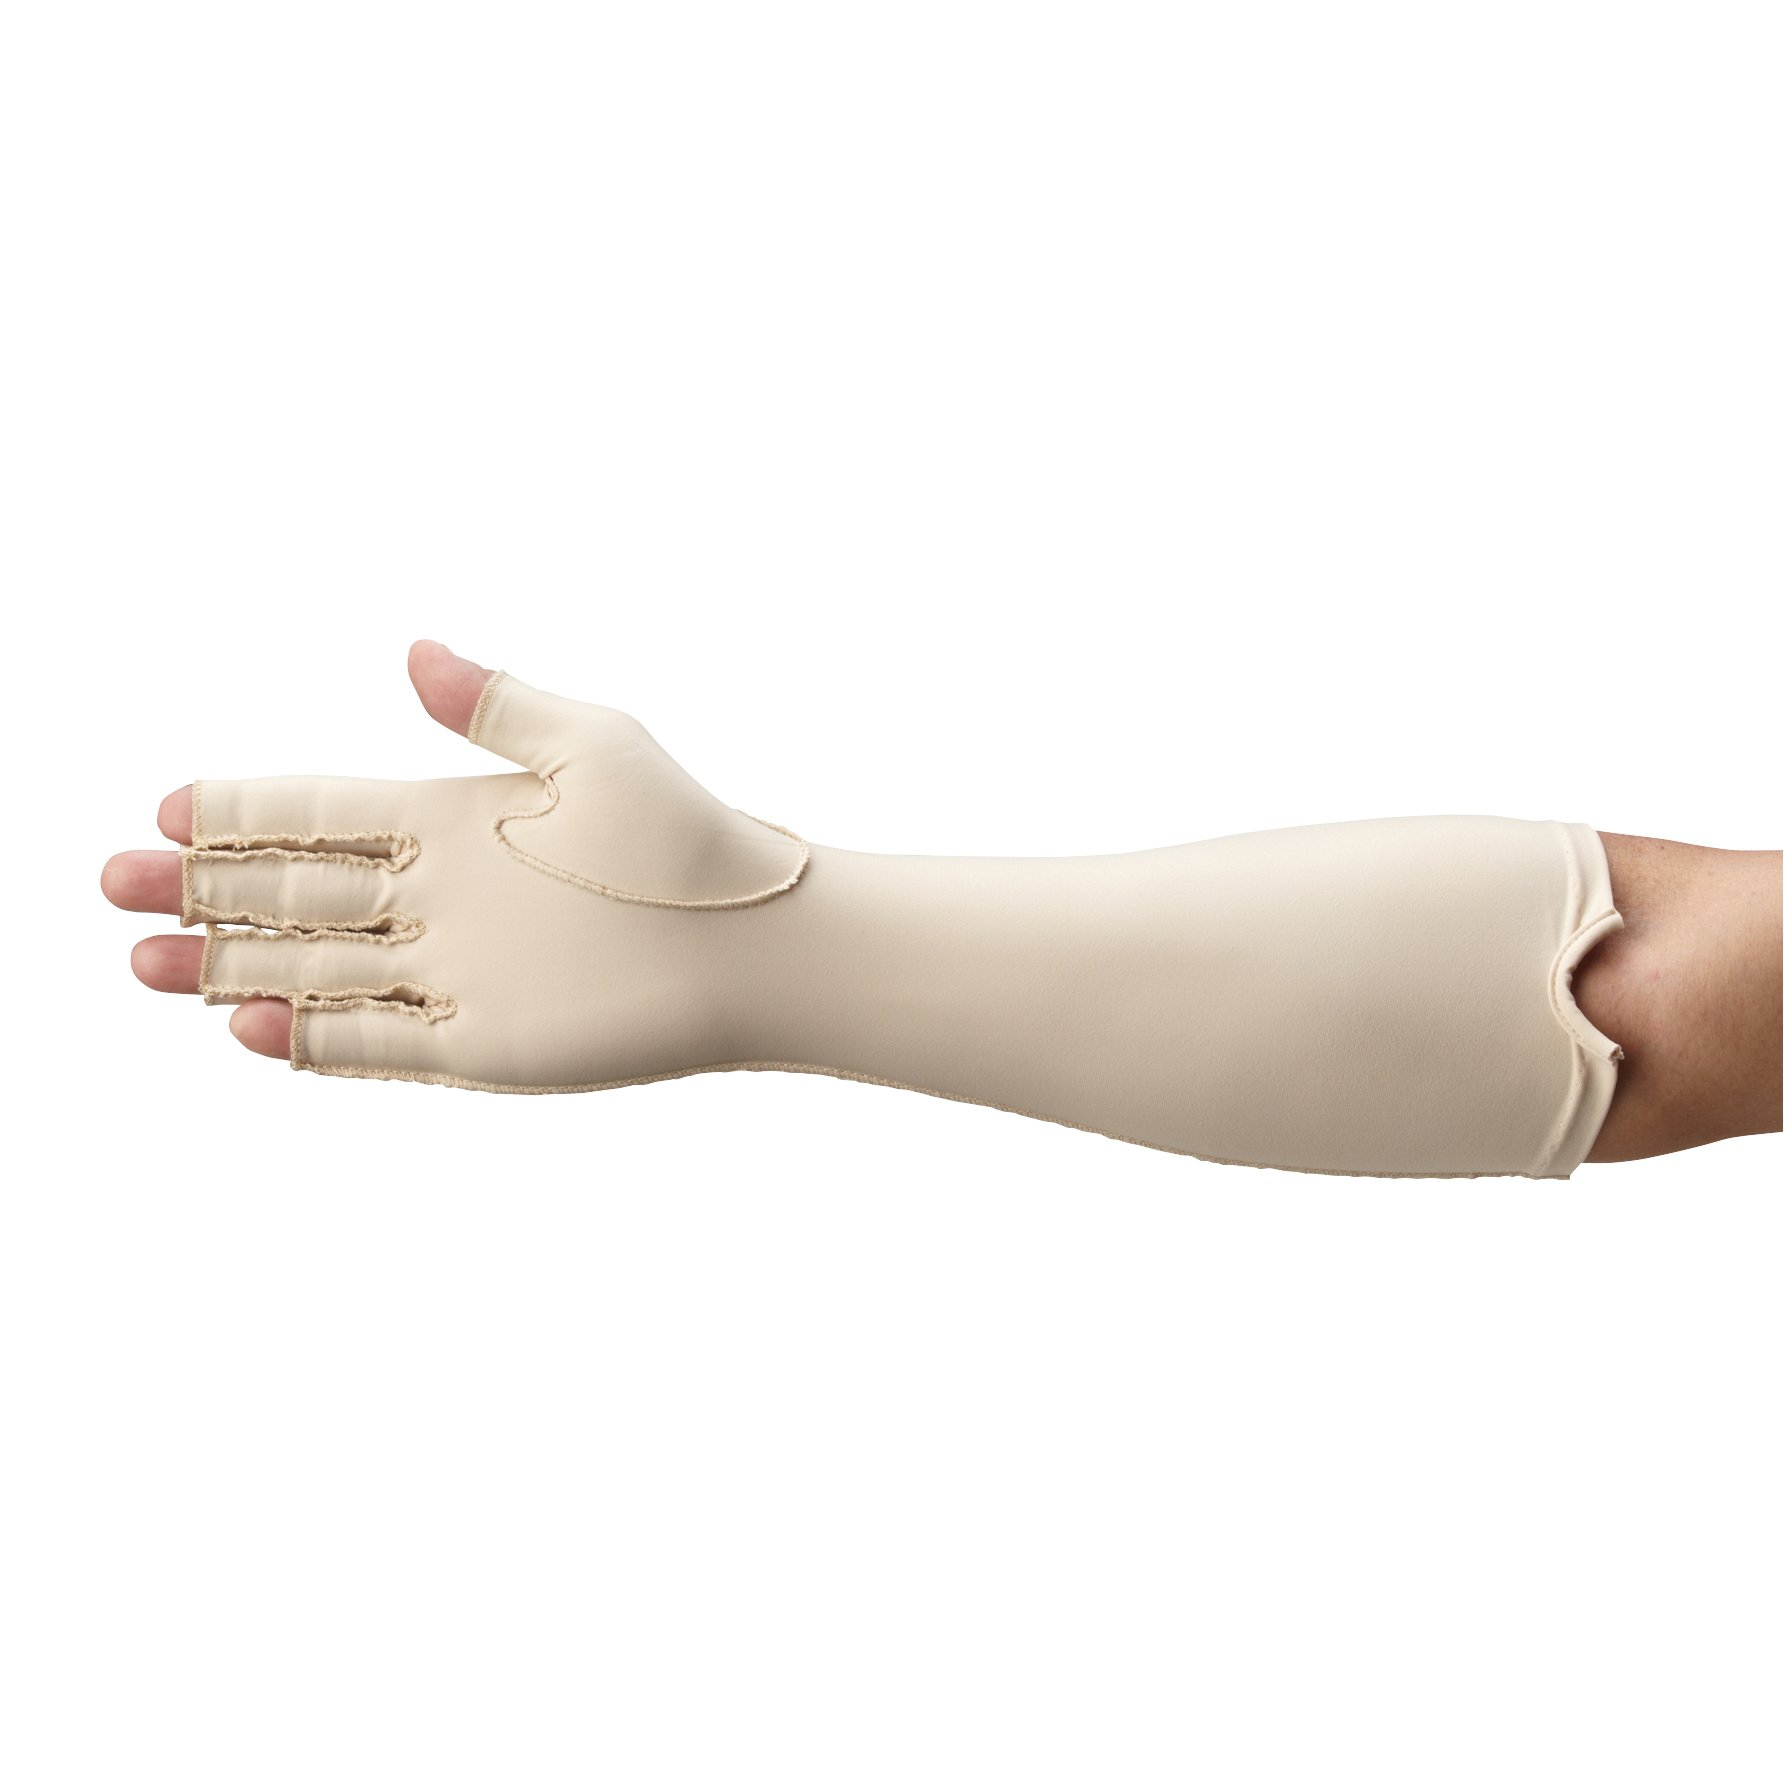 Rolyan Forearm Length Right Compression Glove, Open Finger Compression Sleeve to Control Edema and Swelling, Water Retention, and Vericose Veins, Covers Fingers to Forearm on Right Arm, Small